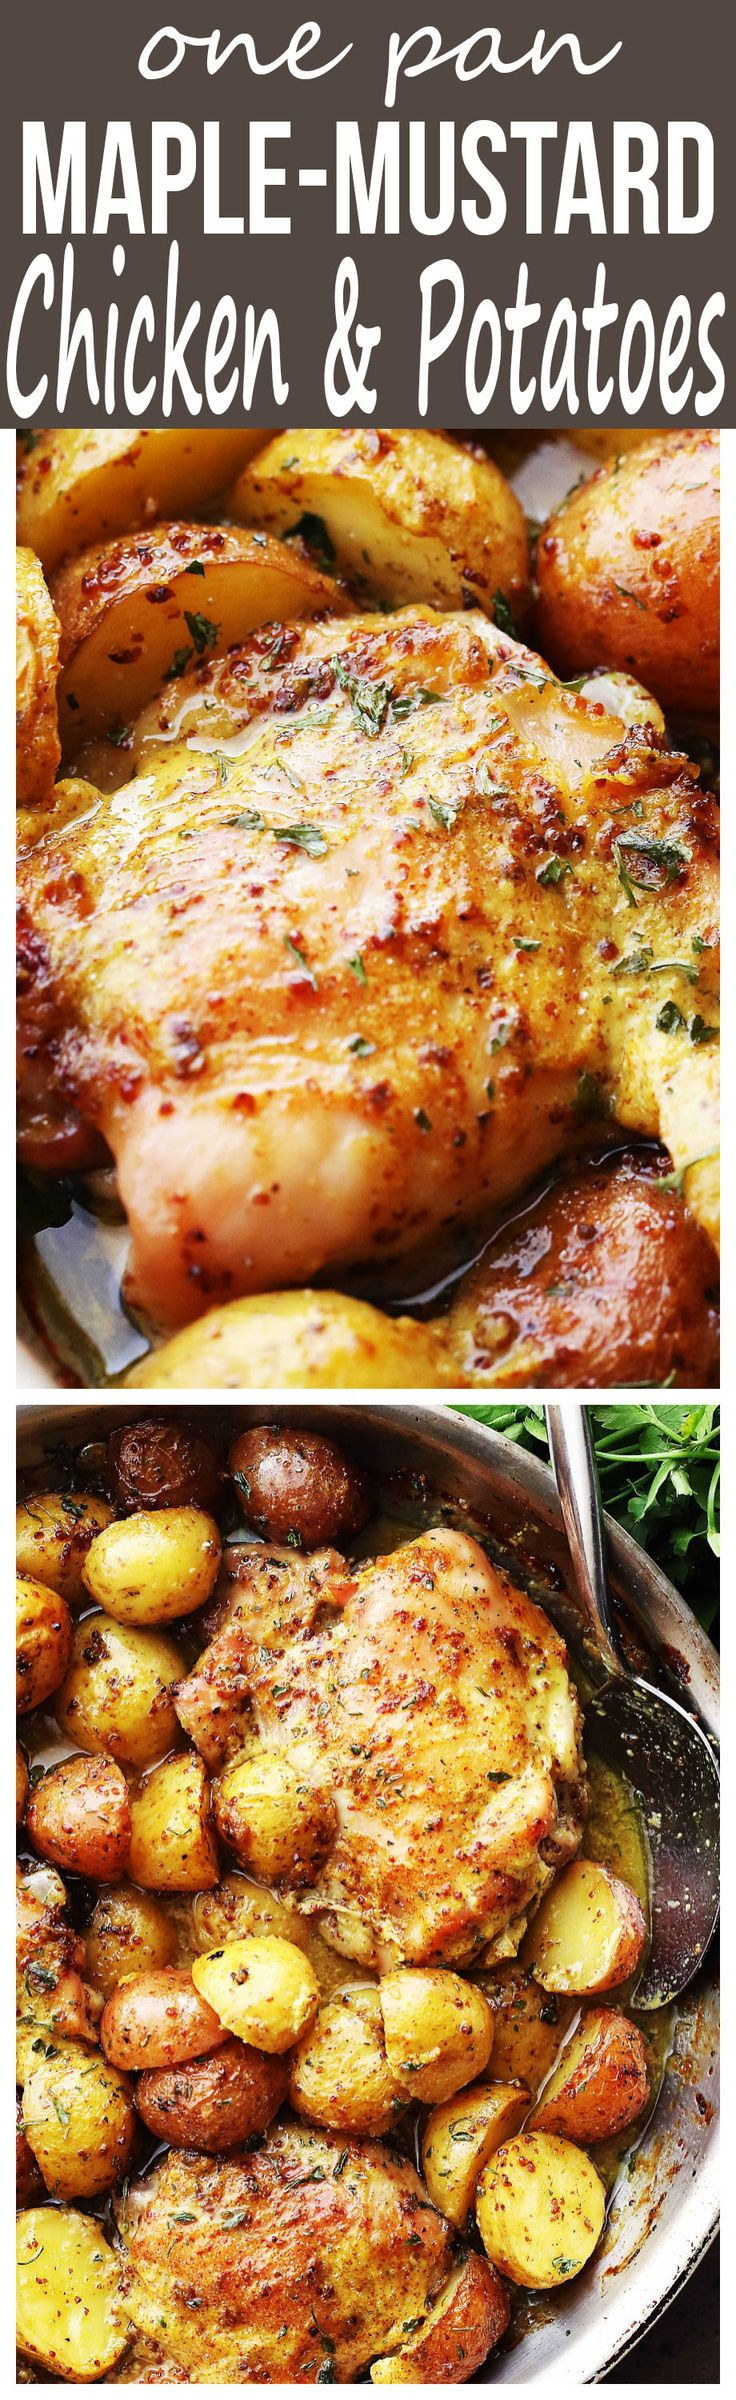 Best 25 bone in chicken recipes ideas on pinterest bone in maybe keep potatoes separate one pan maple mustard chicken and potatoes easy and absolutely amazing one pan dinner with chicken thighs and potatoes cooked ccuart Image collections